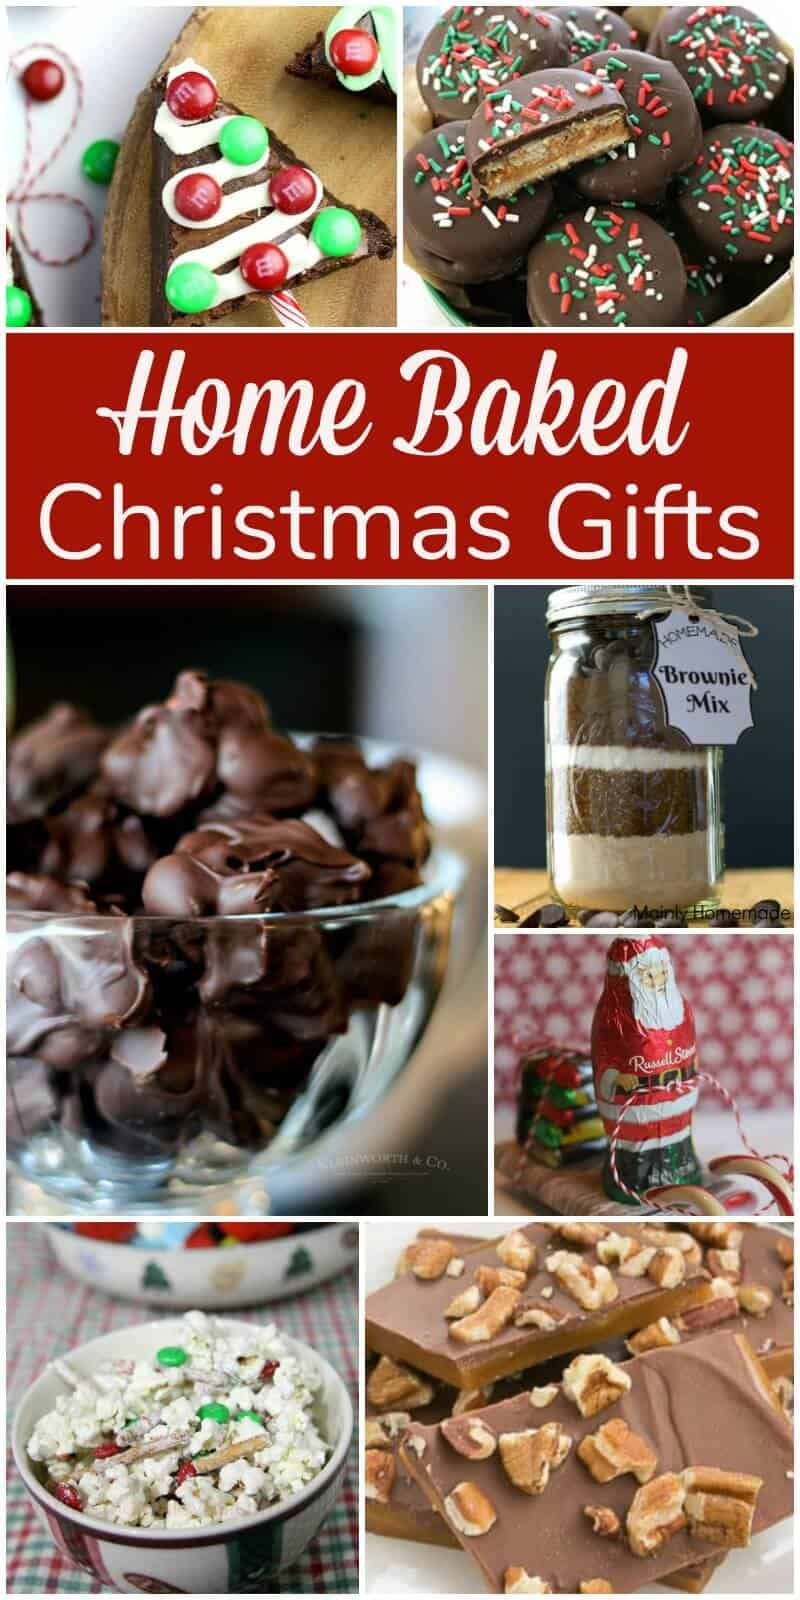 Home Baked Christmas Treats and are perfect for Christmas Gifts